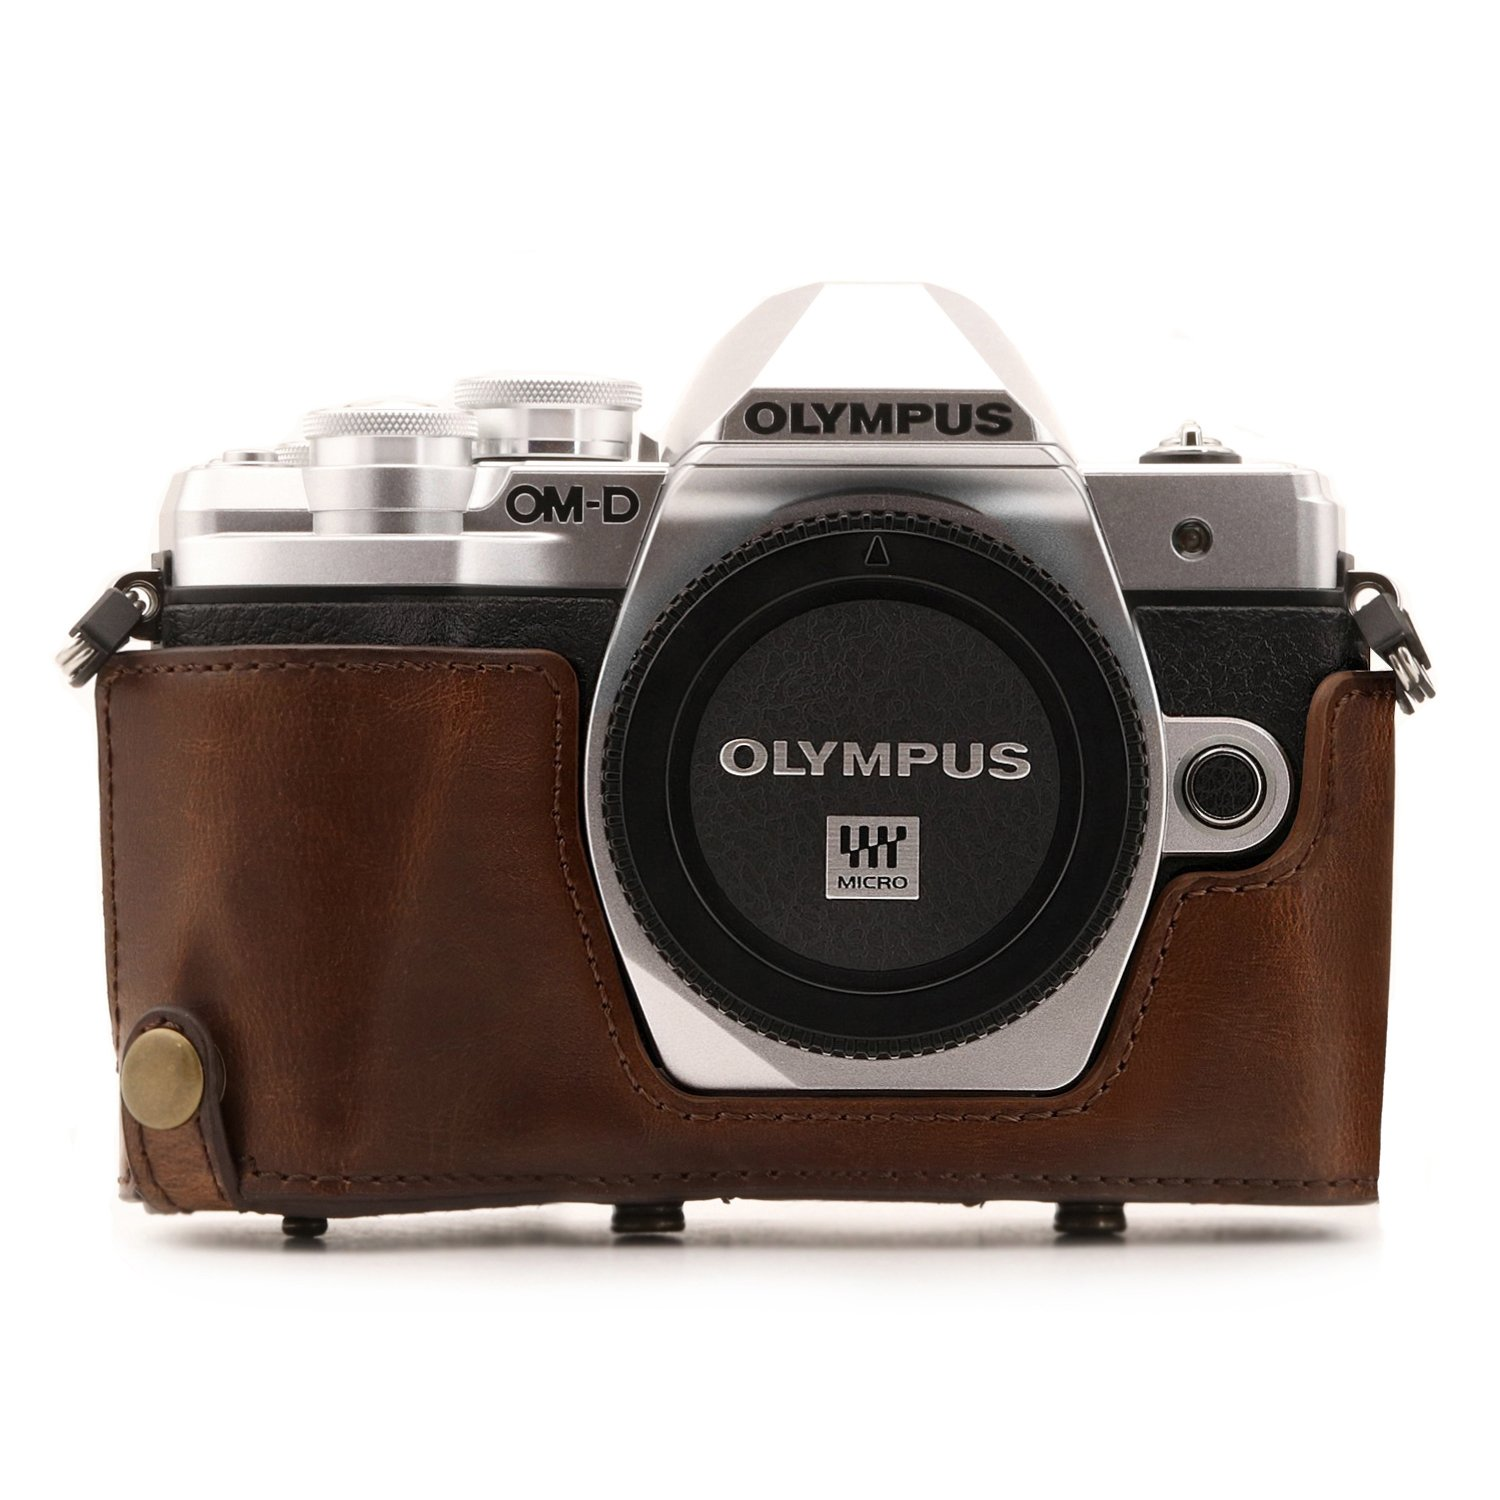 with Battery Access Ever Ready Leather Camera Case and Strap 14-42mm MegaGear Olympus OM-D E-M10 Mark III MG1346 Dark Brown